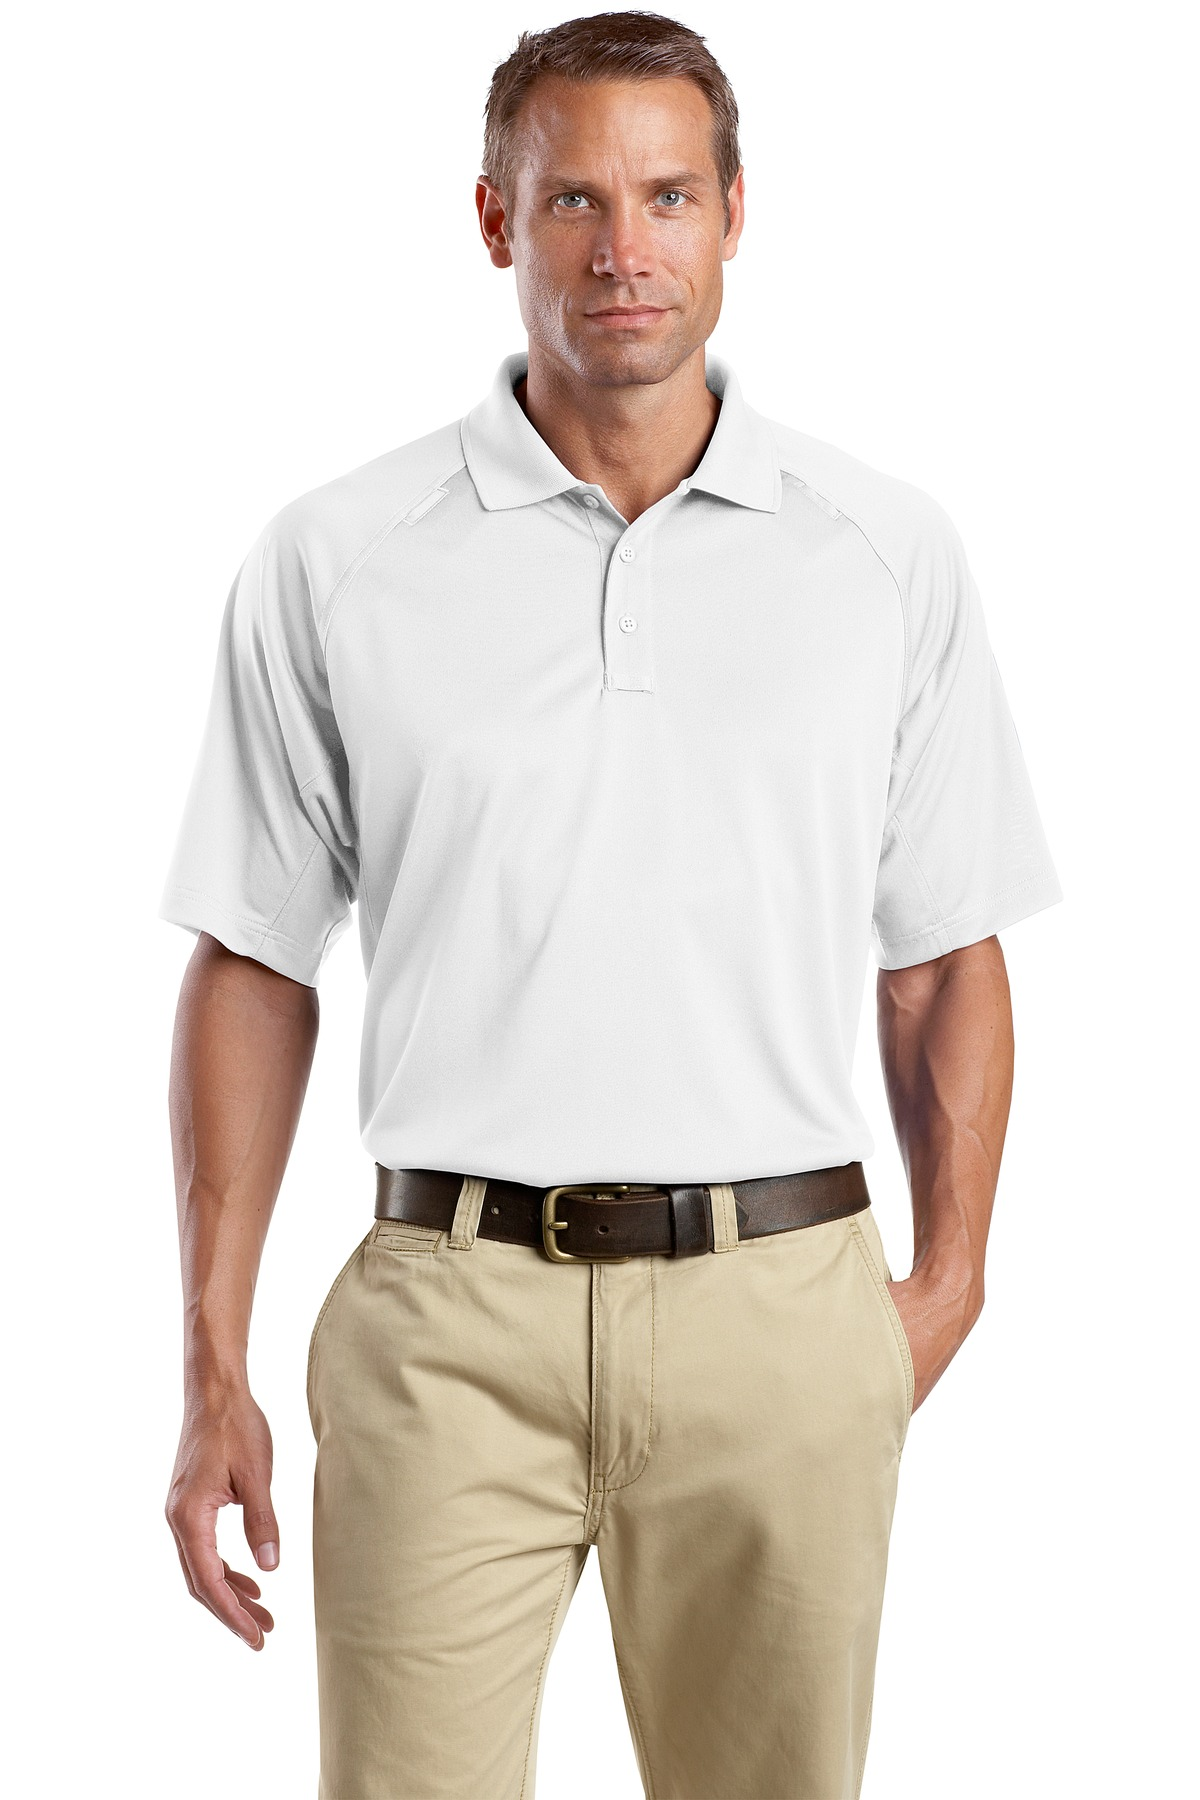 CornerStone® - Select Snag-Proof Tactical SUMMER Polo.-CornerStone